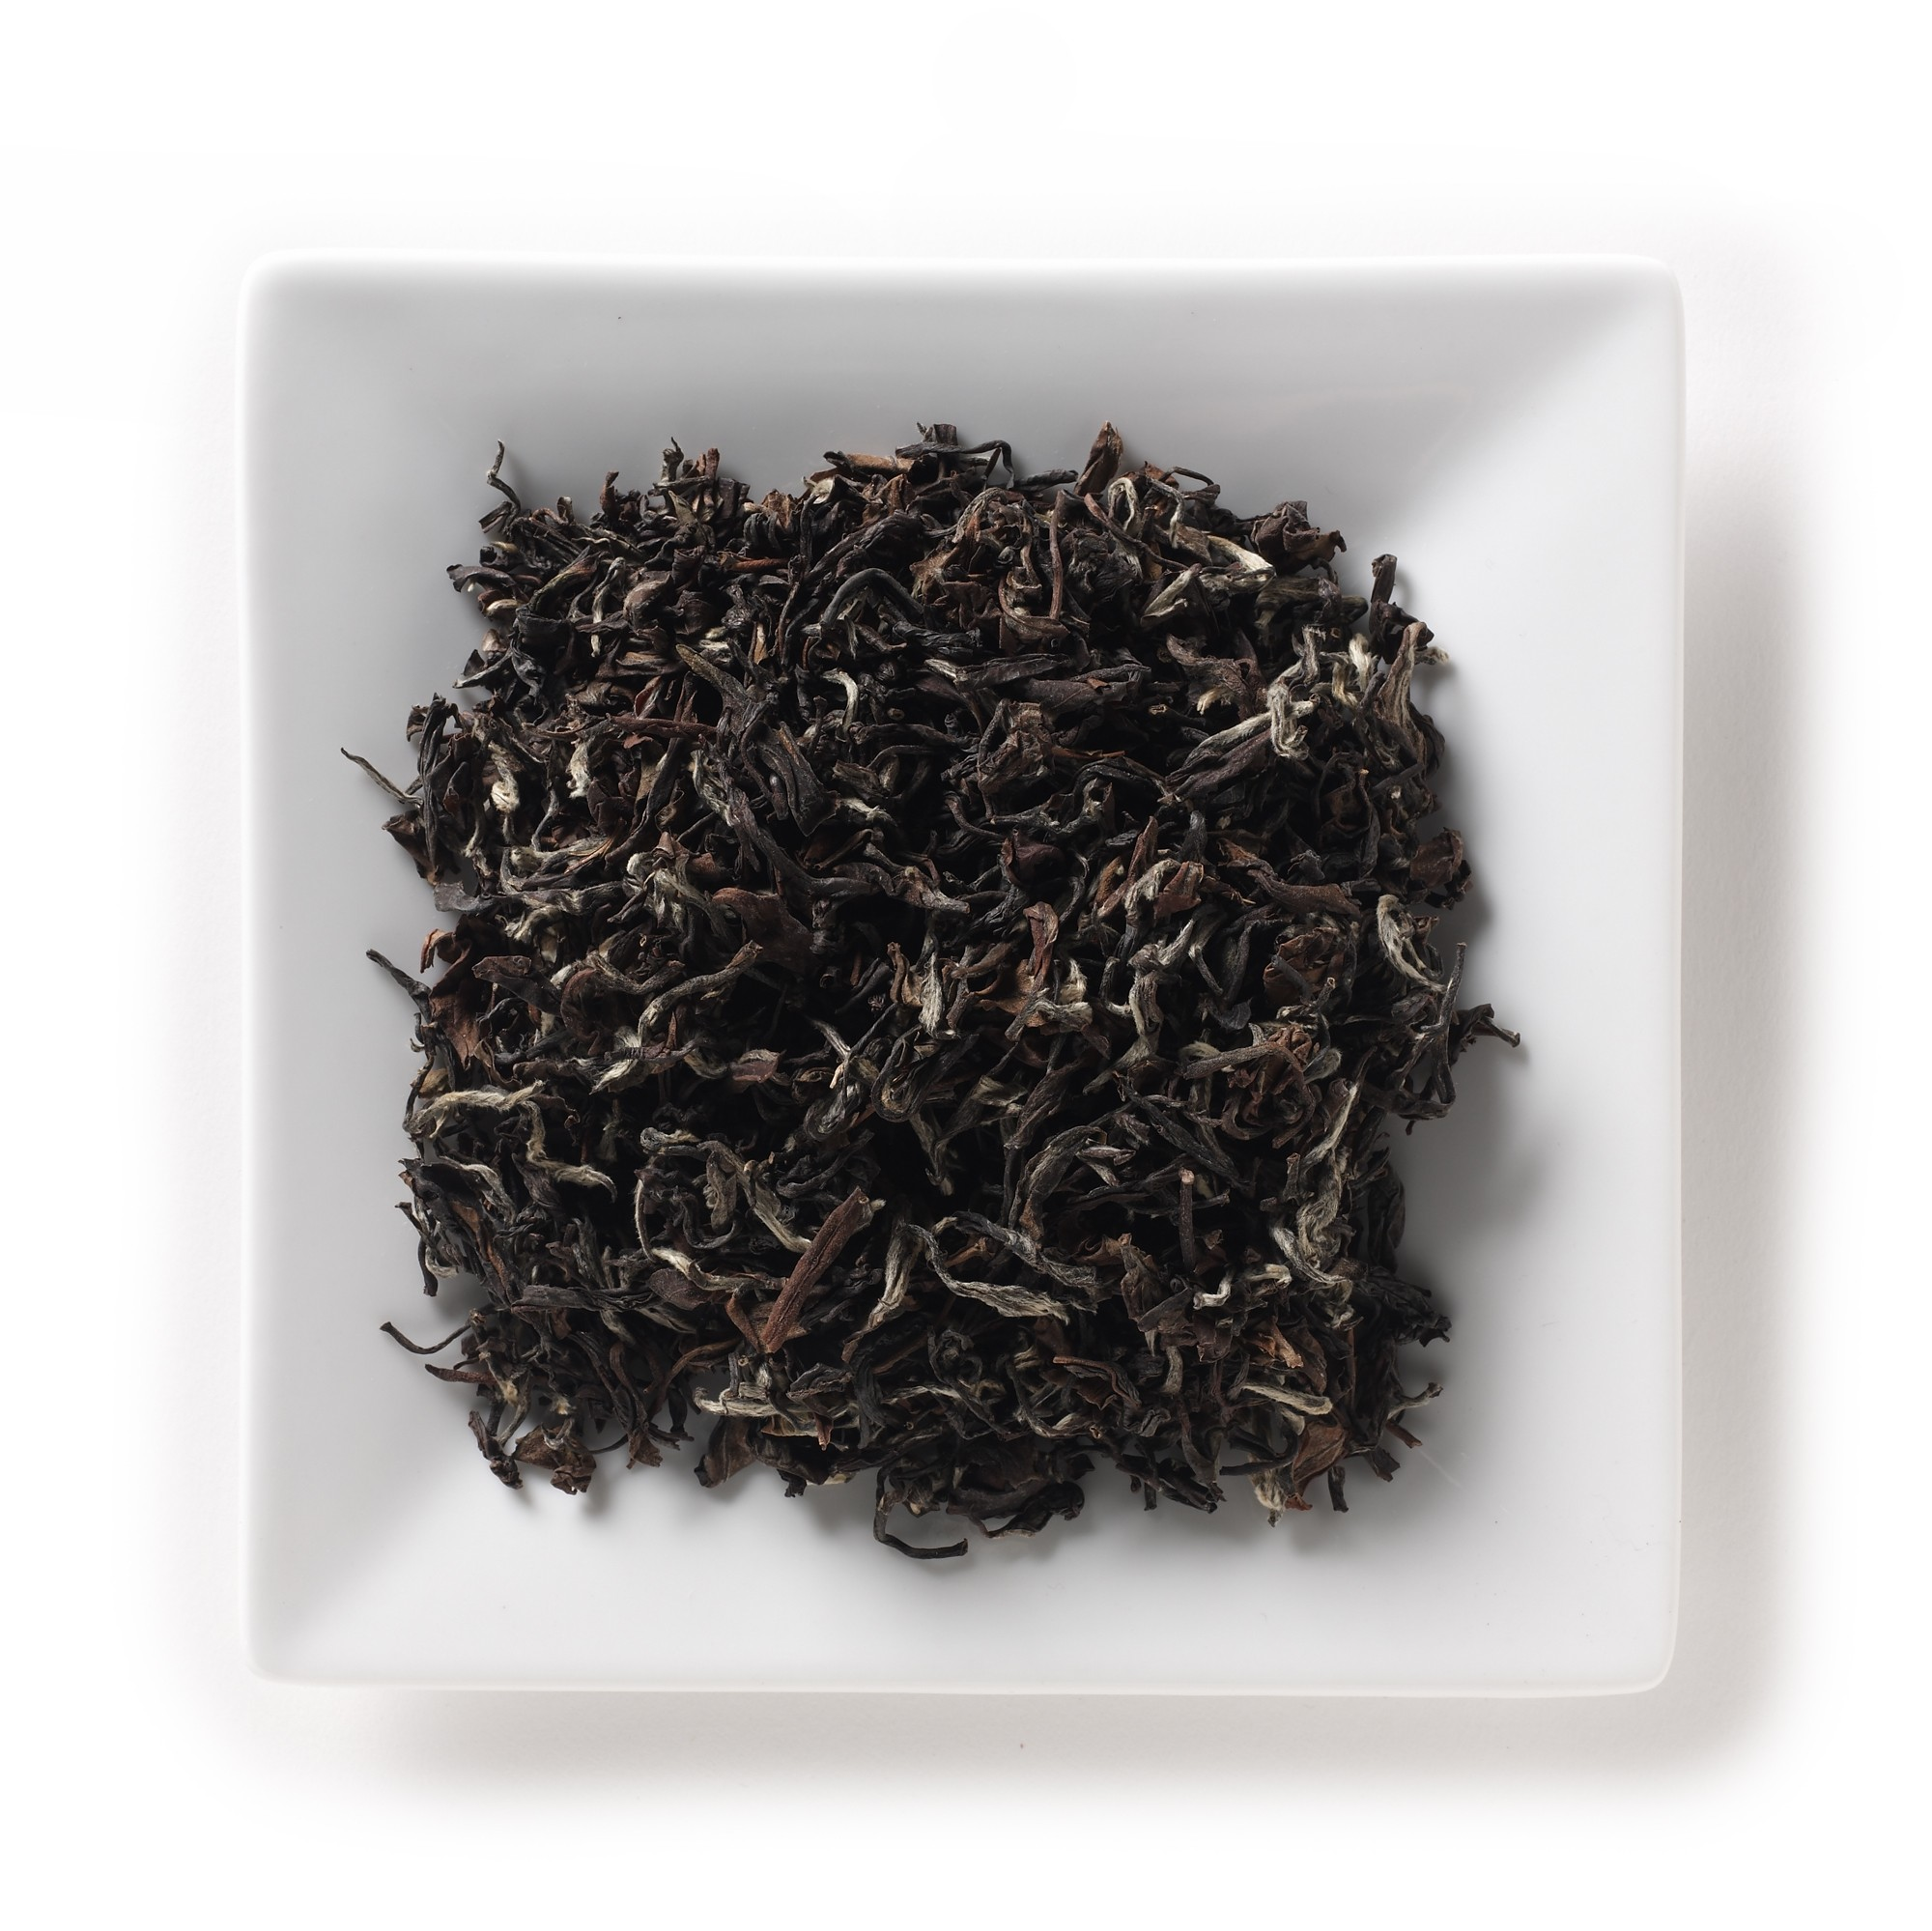 White Tip Fancy Oolong